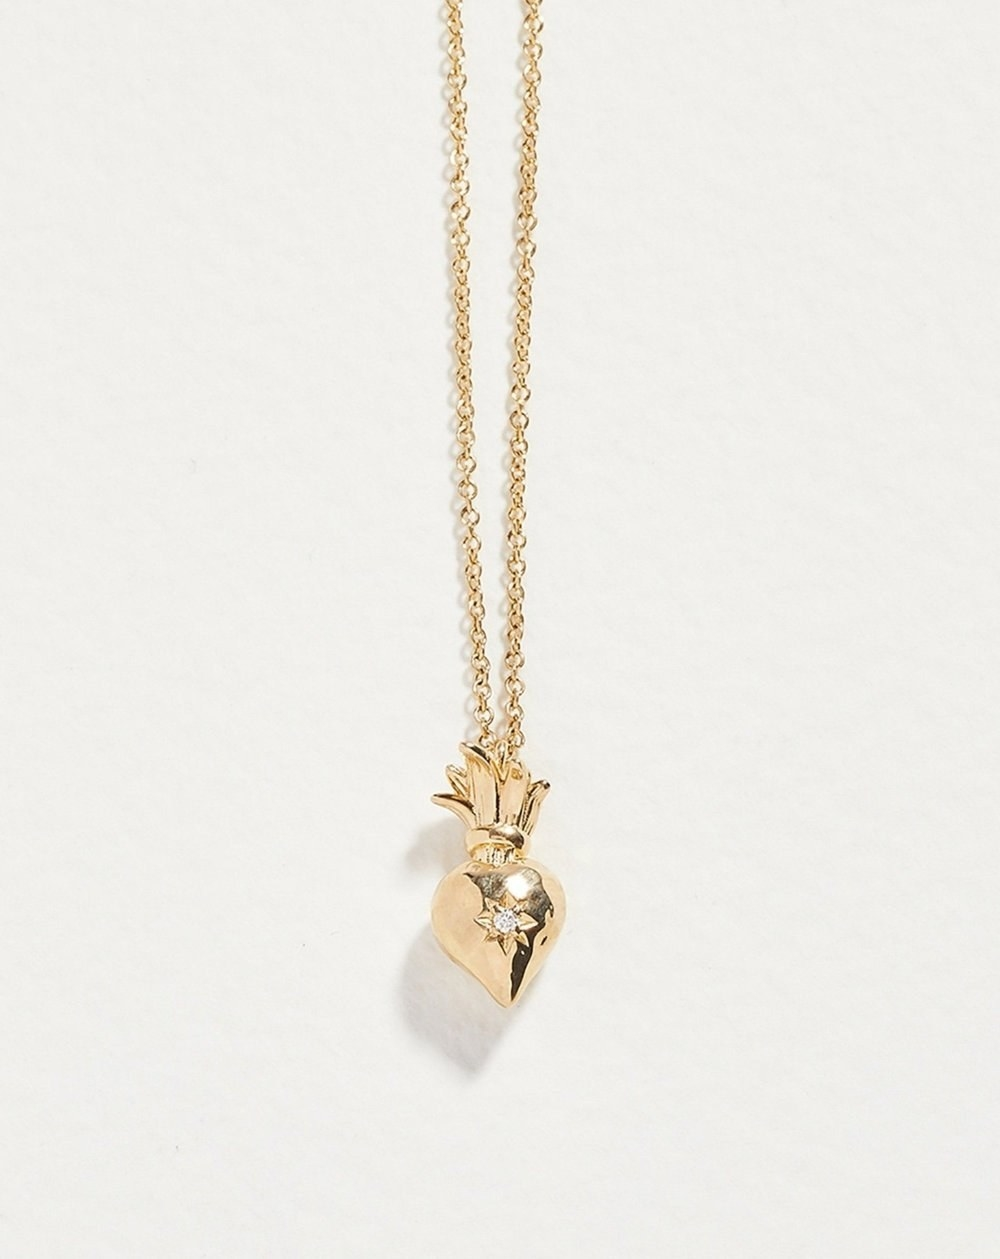 a gold sacred heart pendant with a diamond encrusted in its center on a gold chain